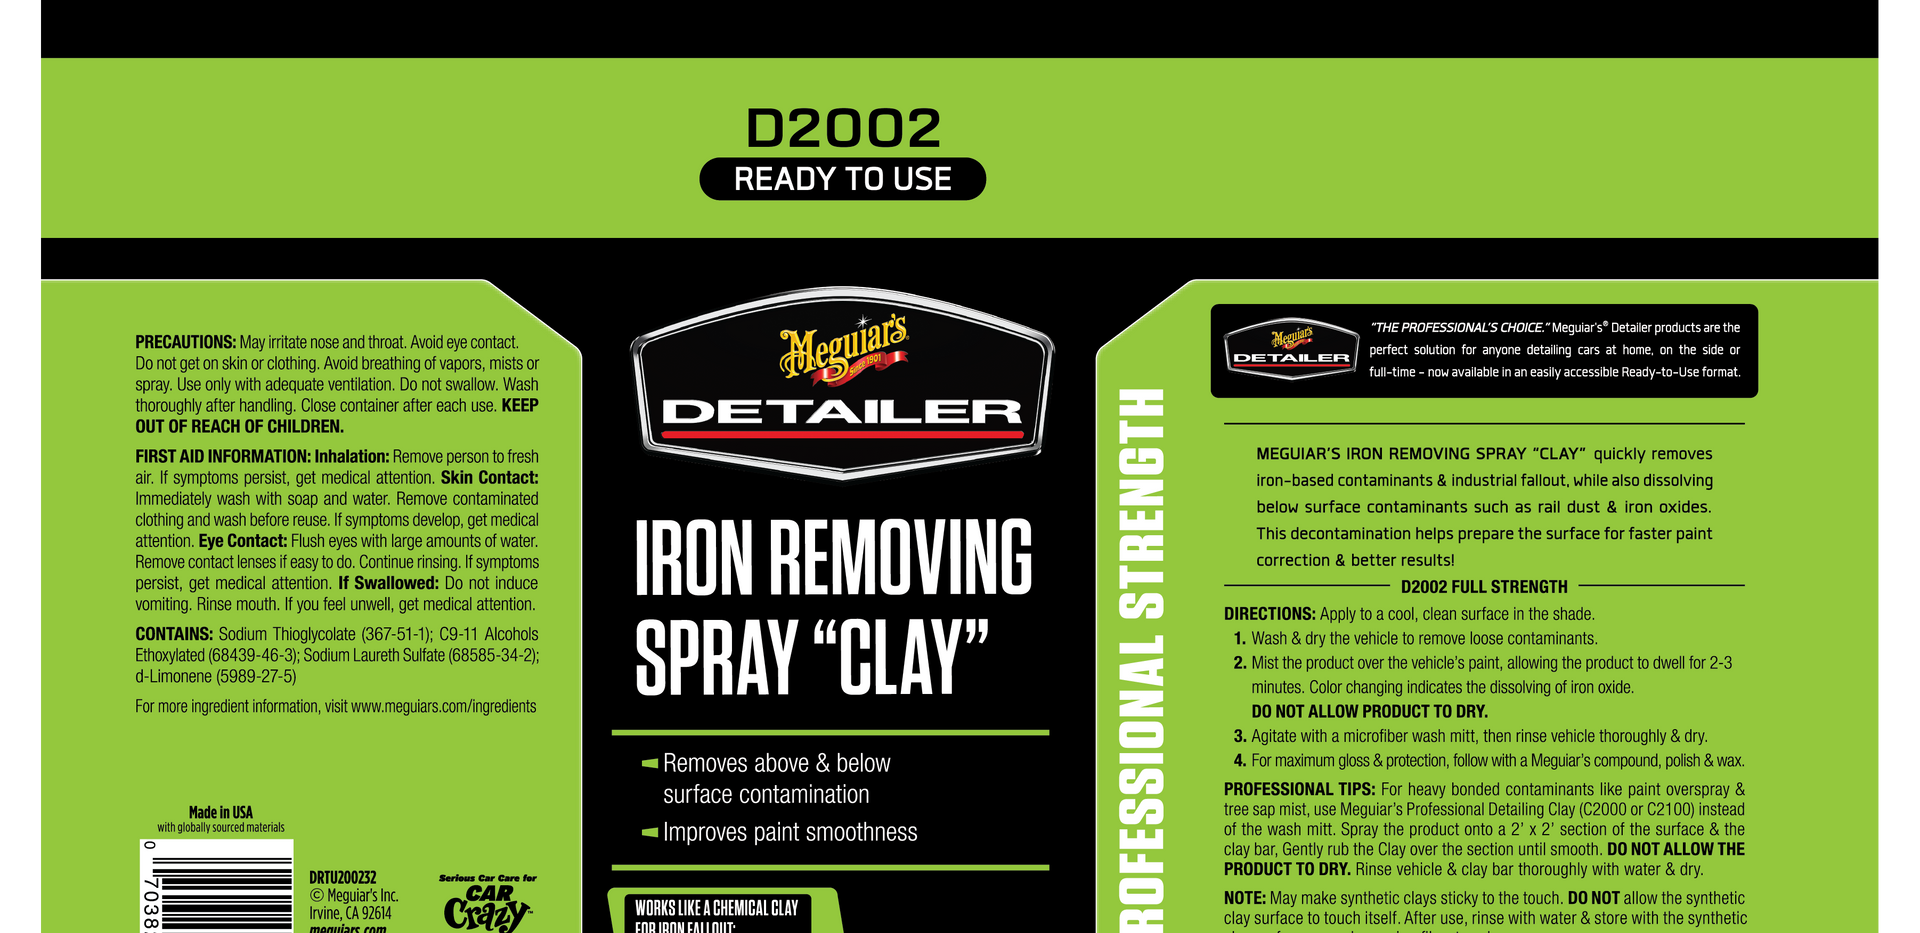 DRTU200232_IronRemovingSprayClay_Out.png